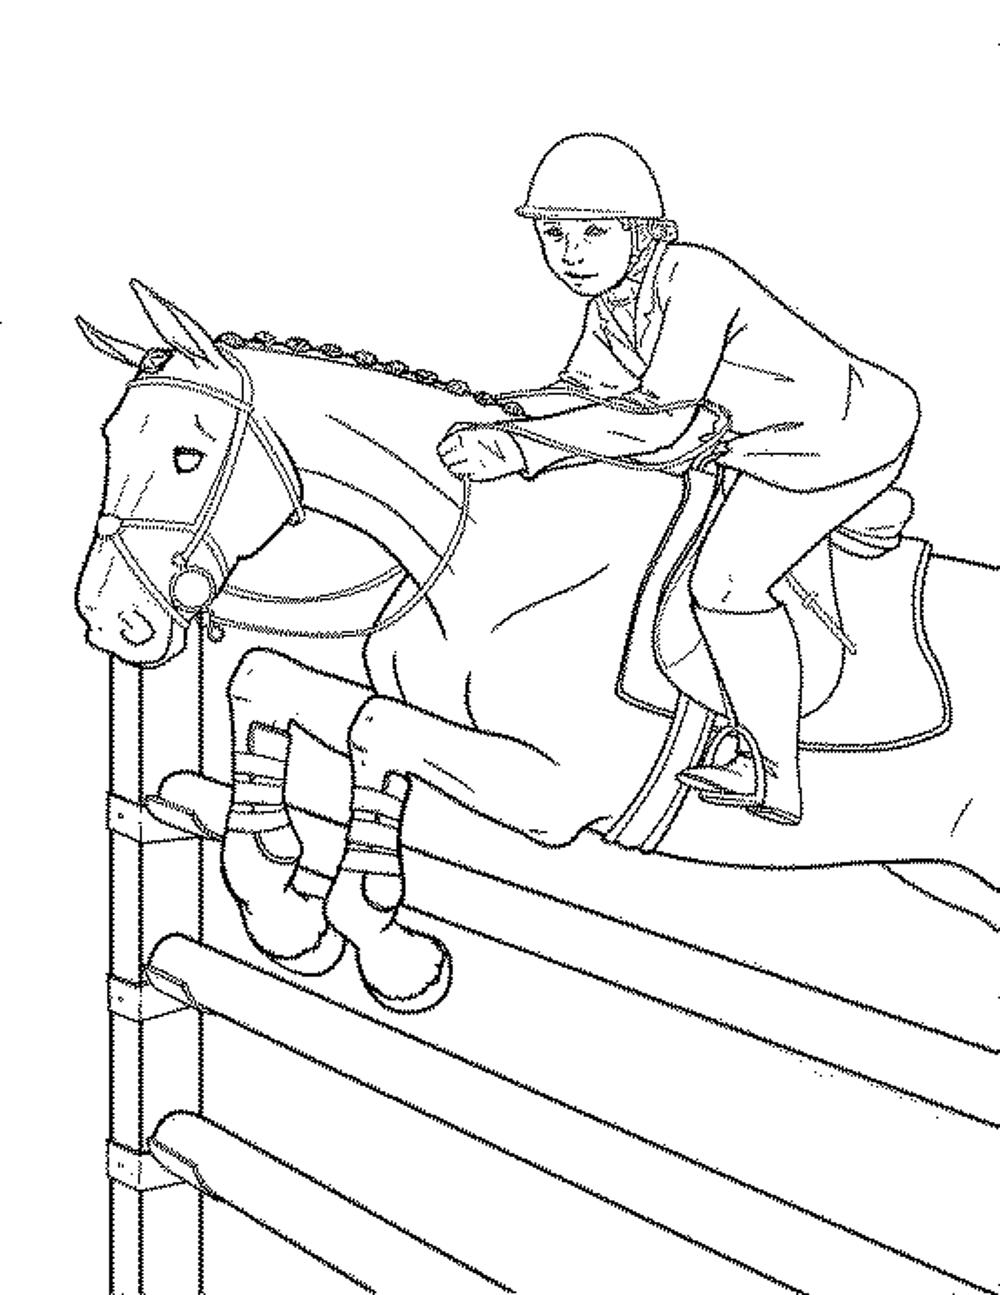 coloring page of horse horse coloring pages coloring pages to download and print of coloring horse page